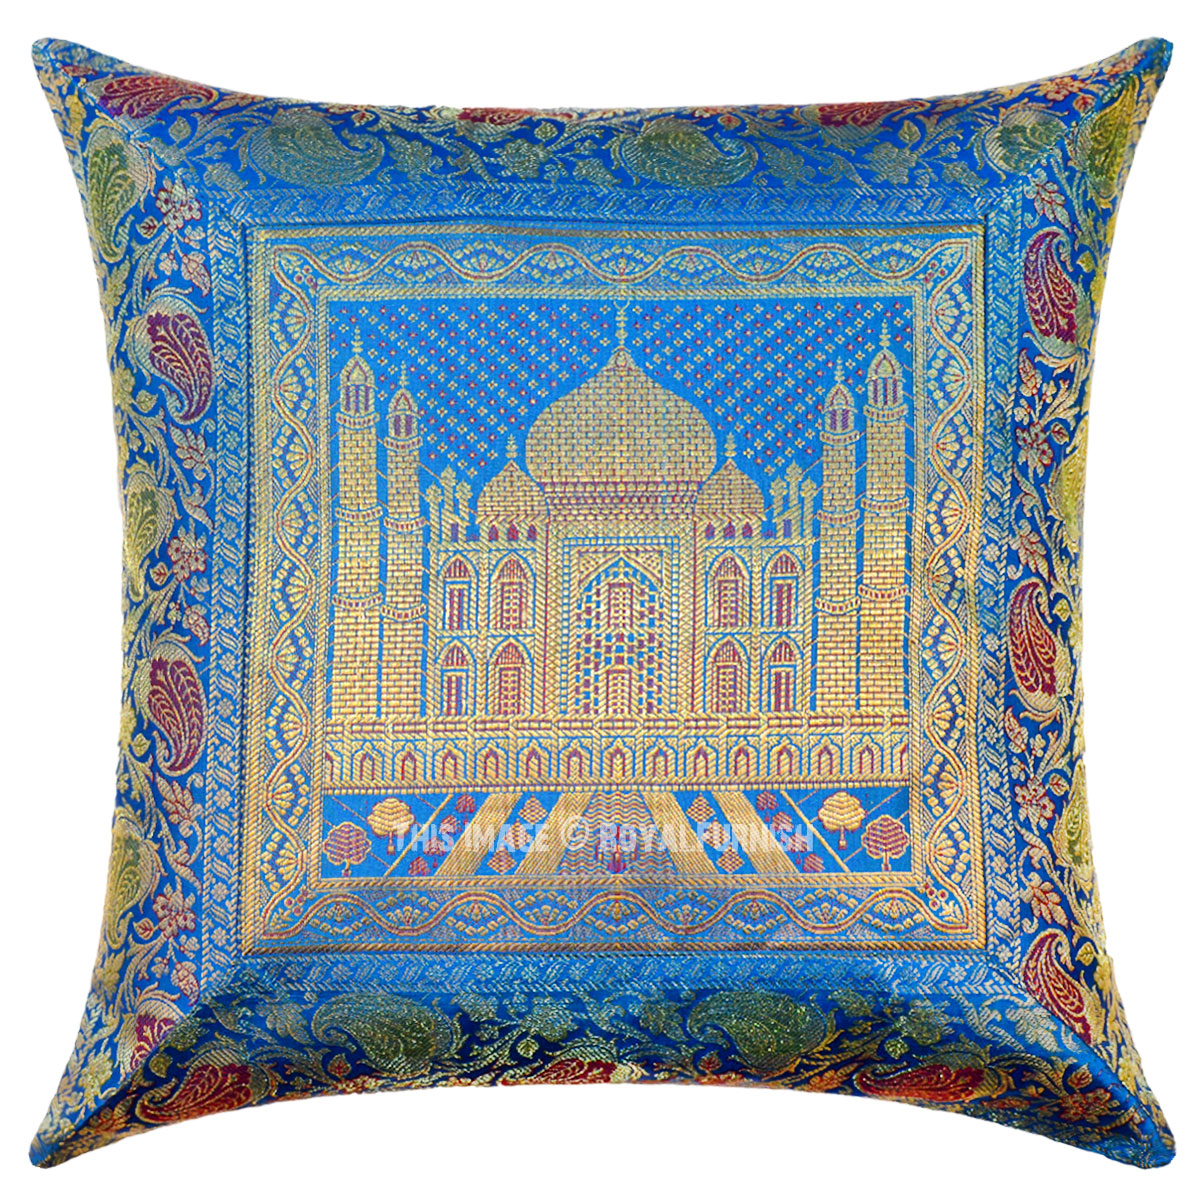 16 Quot Turquoise Blue Indian Tajmahal Silk Brocade Sofa Throw